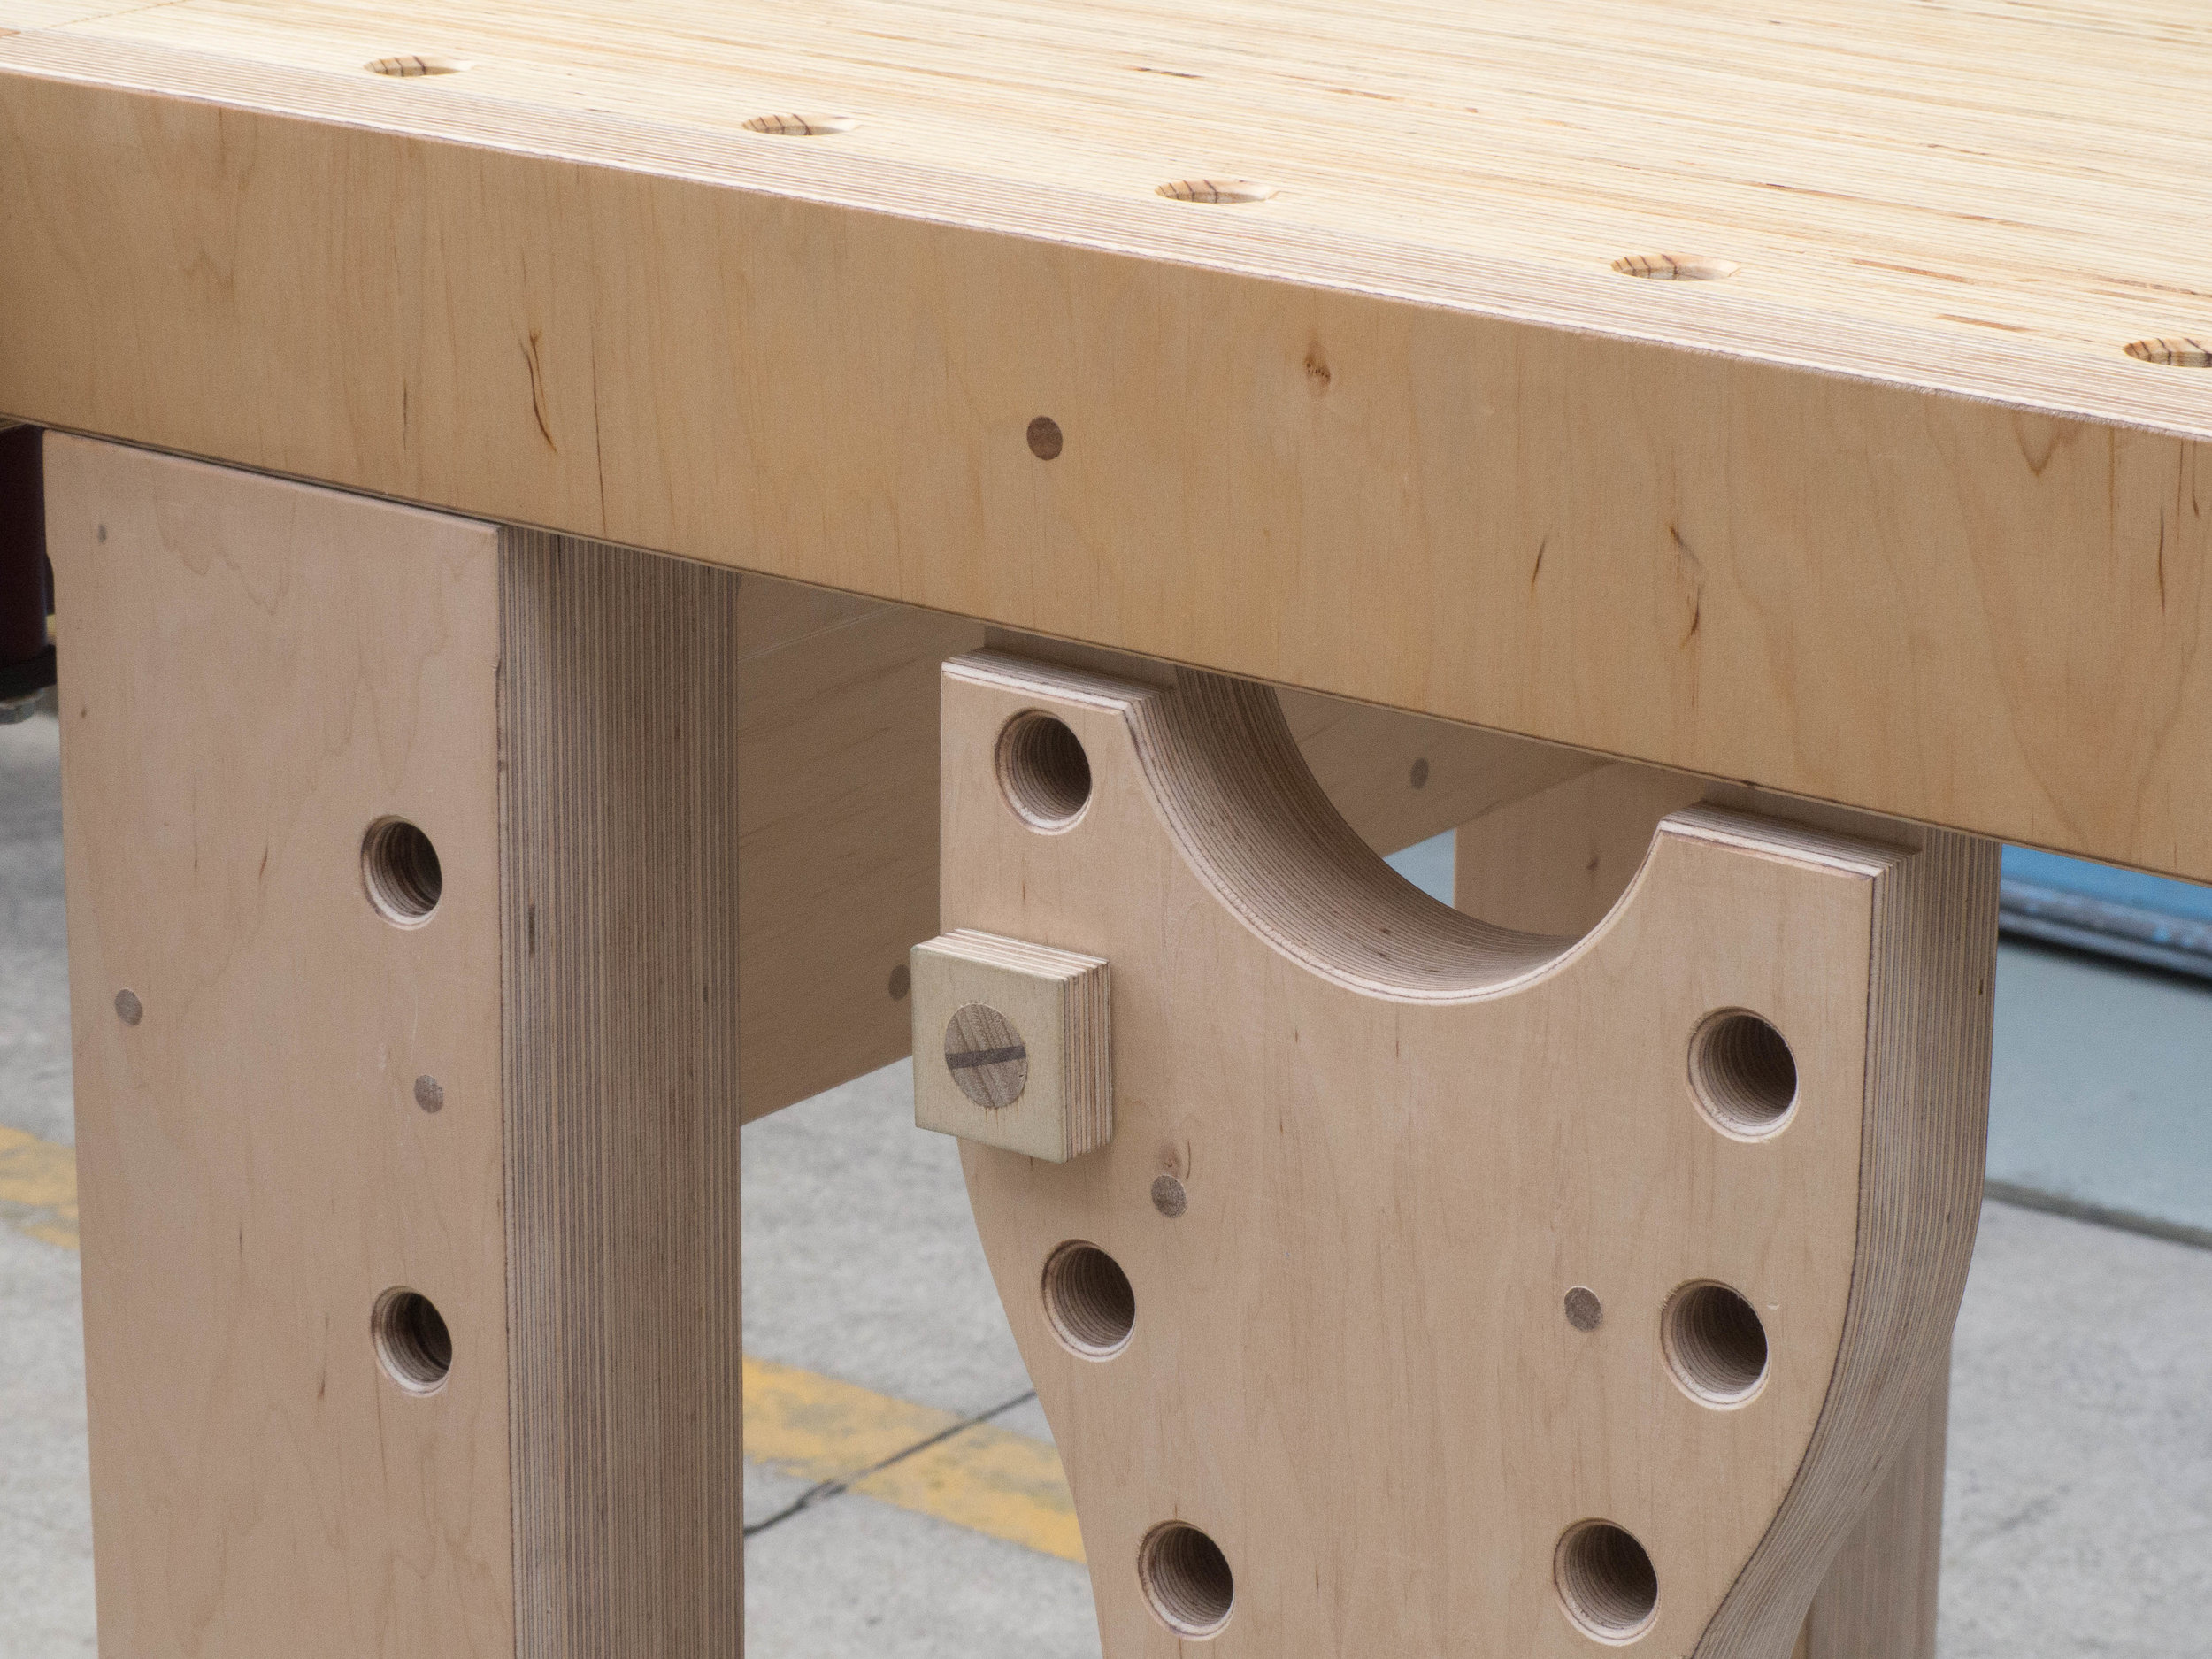 """Why round dog holes?  """" 1. Round dogs are easier to create... 2. Round dog holes play nicer with holdfasts... 3. Round dog holes have more accessories... 4. You can quickly make your own round dogs...""""  Christopher Schwarz The Workbench Design Book, 2010"""